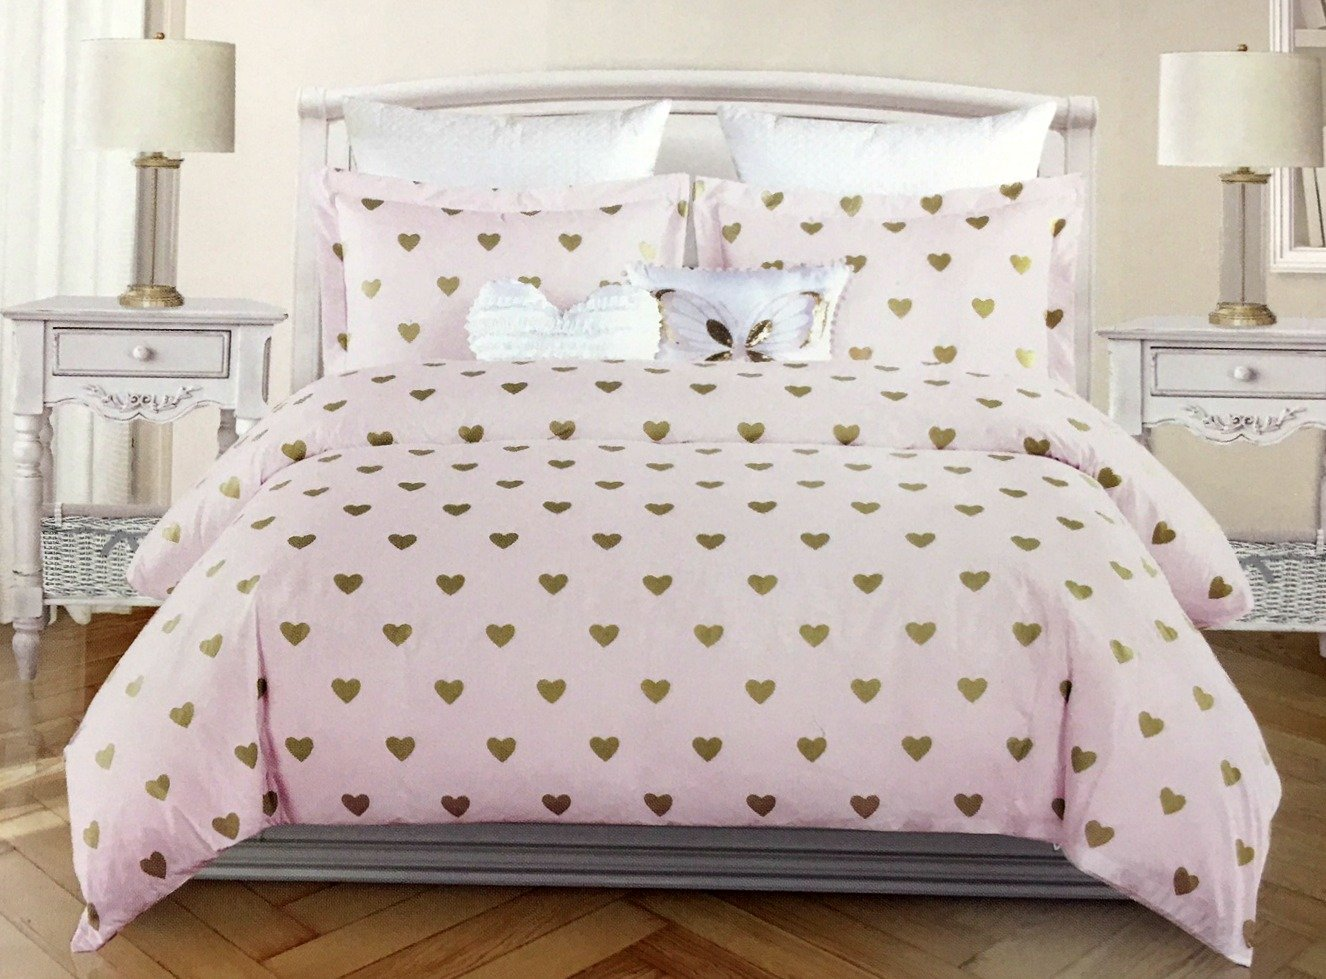 Nicole Miller All Season Girls 5-Piece FULL/QUEEN Comforter Set | Glittering Metallic Gold Hearts on Pink | Machine Washable by NMiller Home for Kids